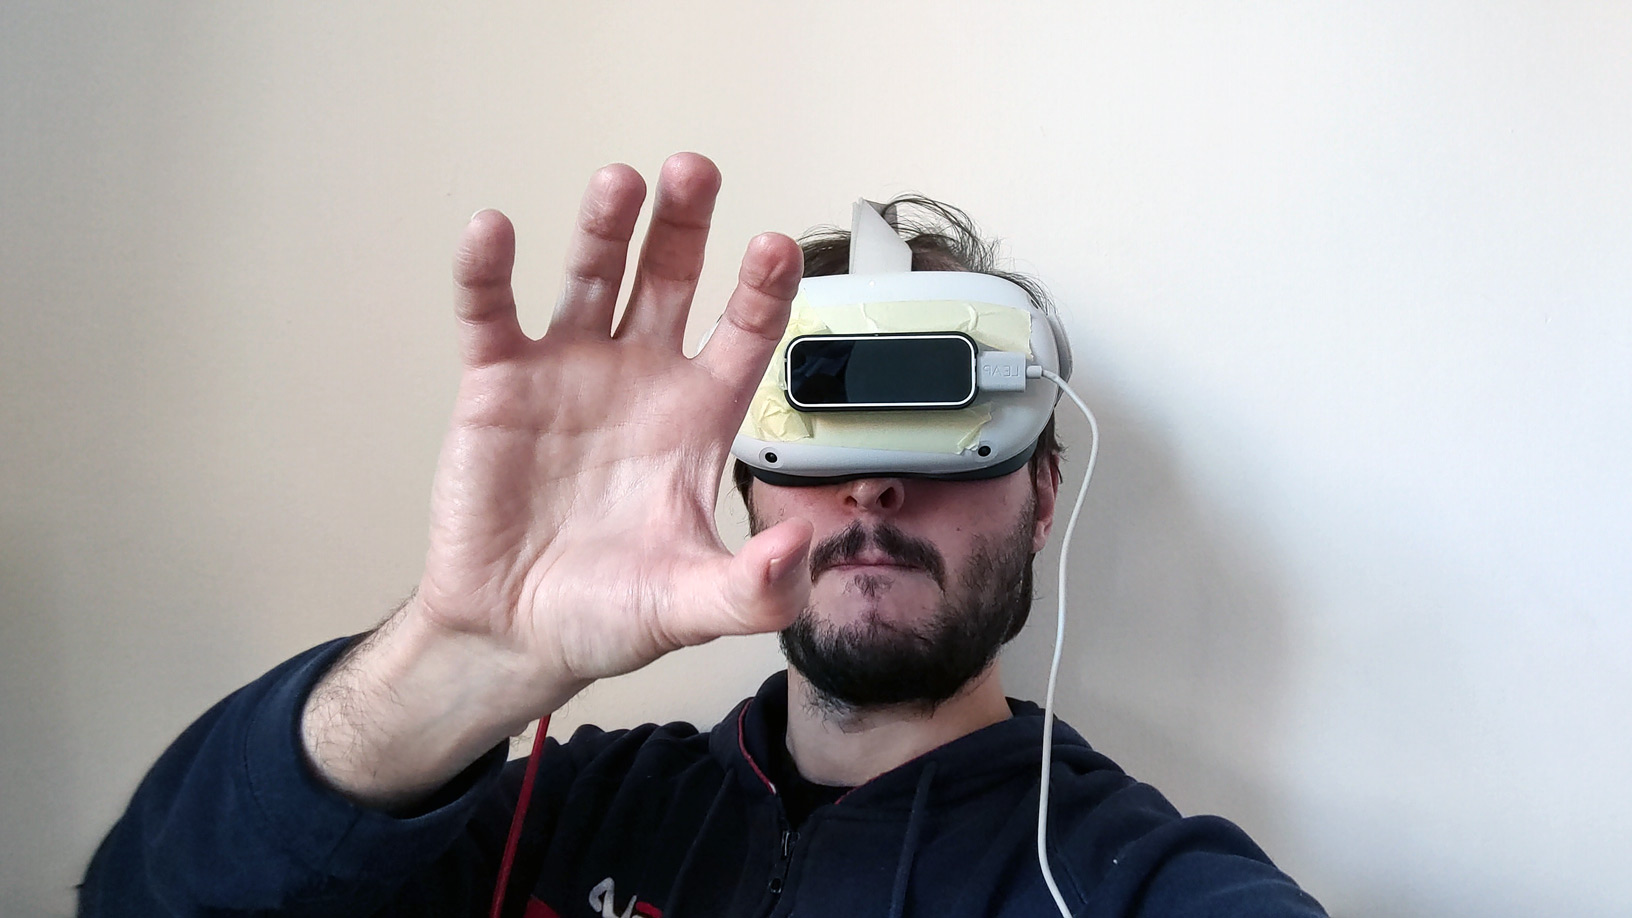 UltraLeap Gemini review: use both hands in VR!